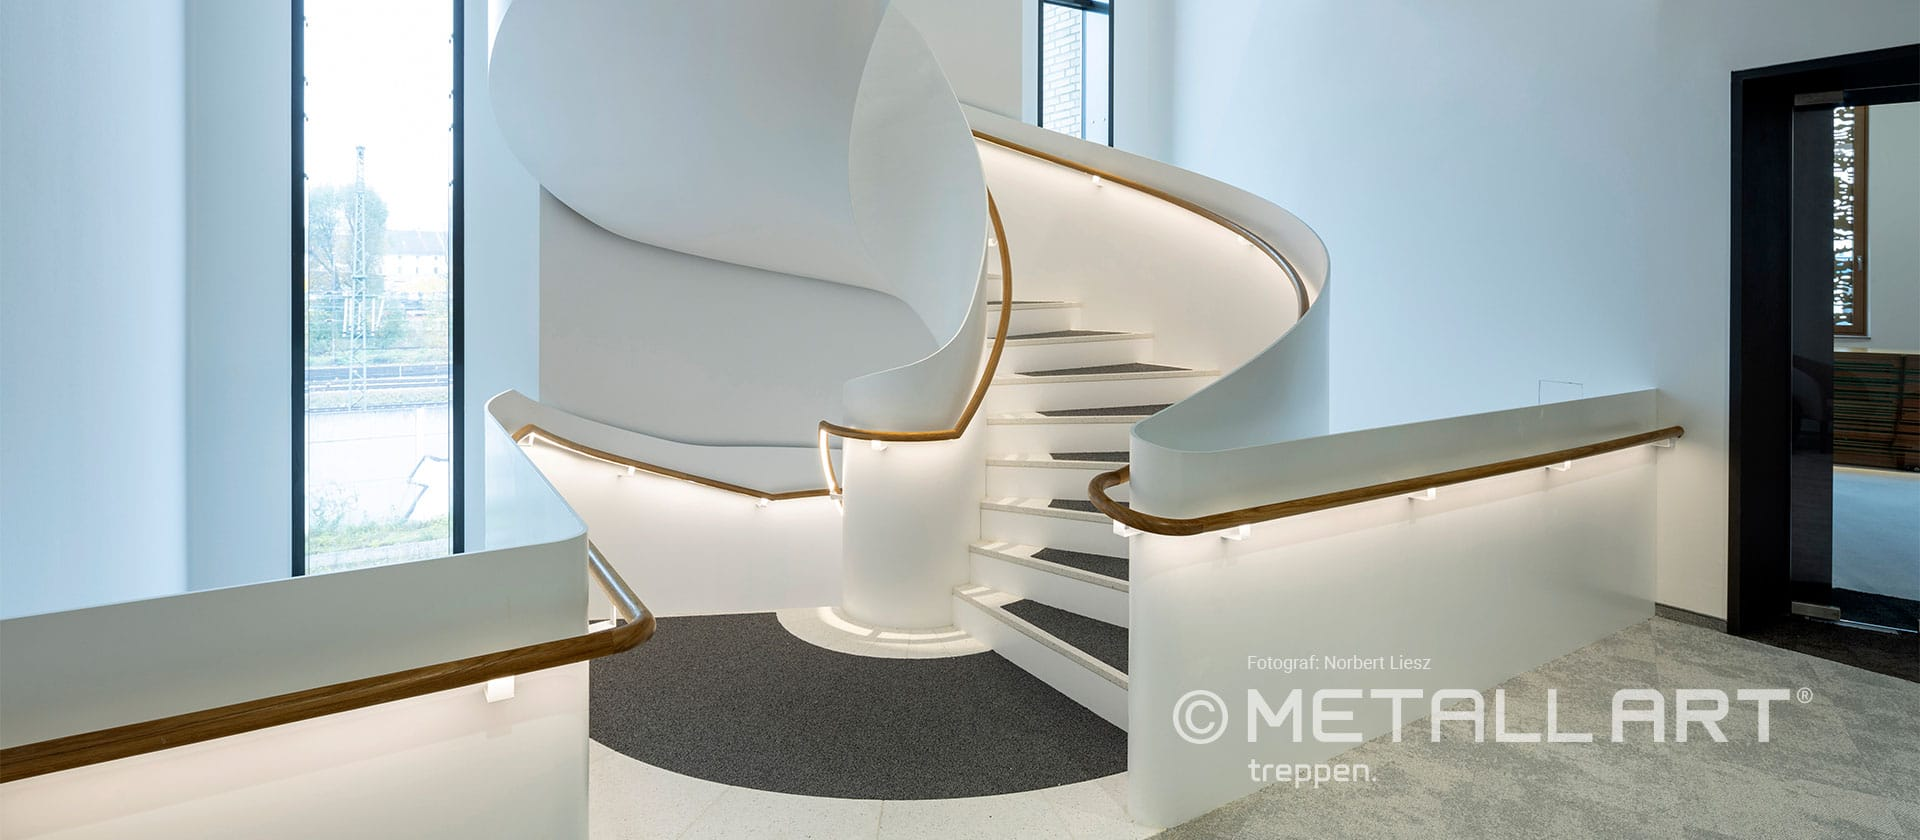 Designtreppe in edlem Weiss